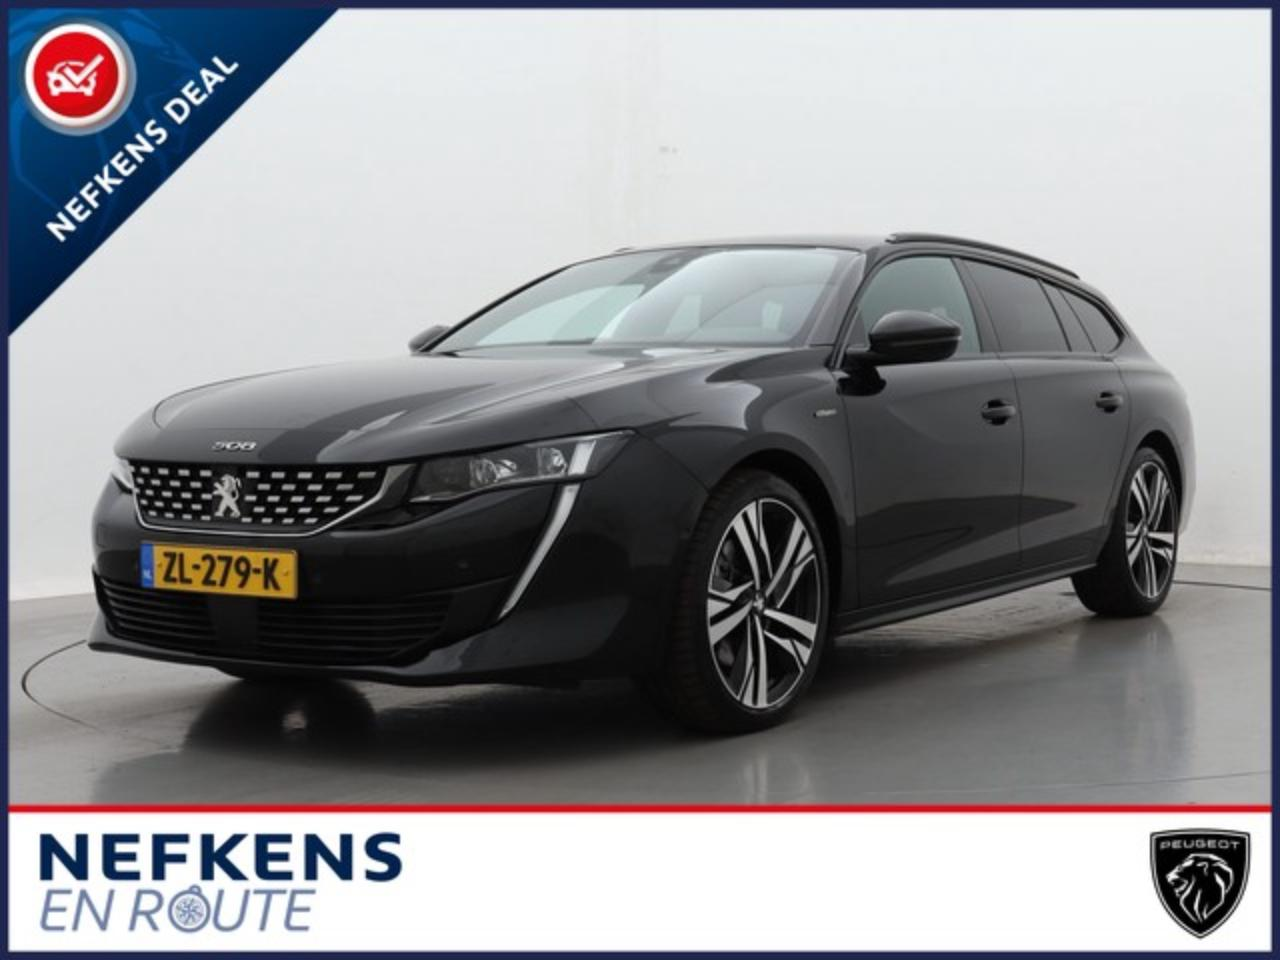 Peugeot 508 SW 2.0 164pk BlueHDI Blue Lease GT Line EAT8 | HiF